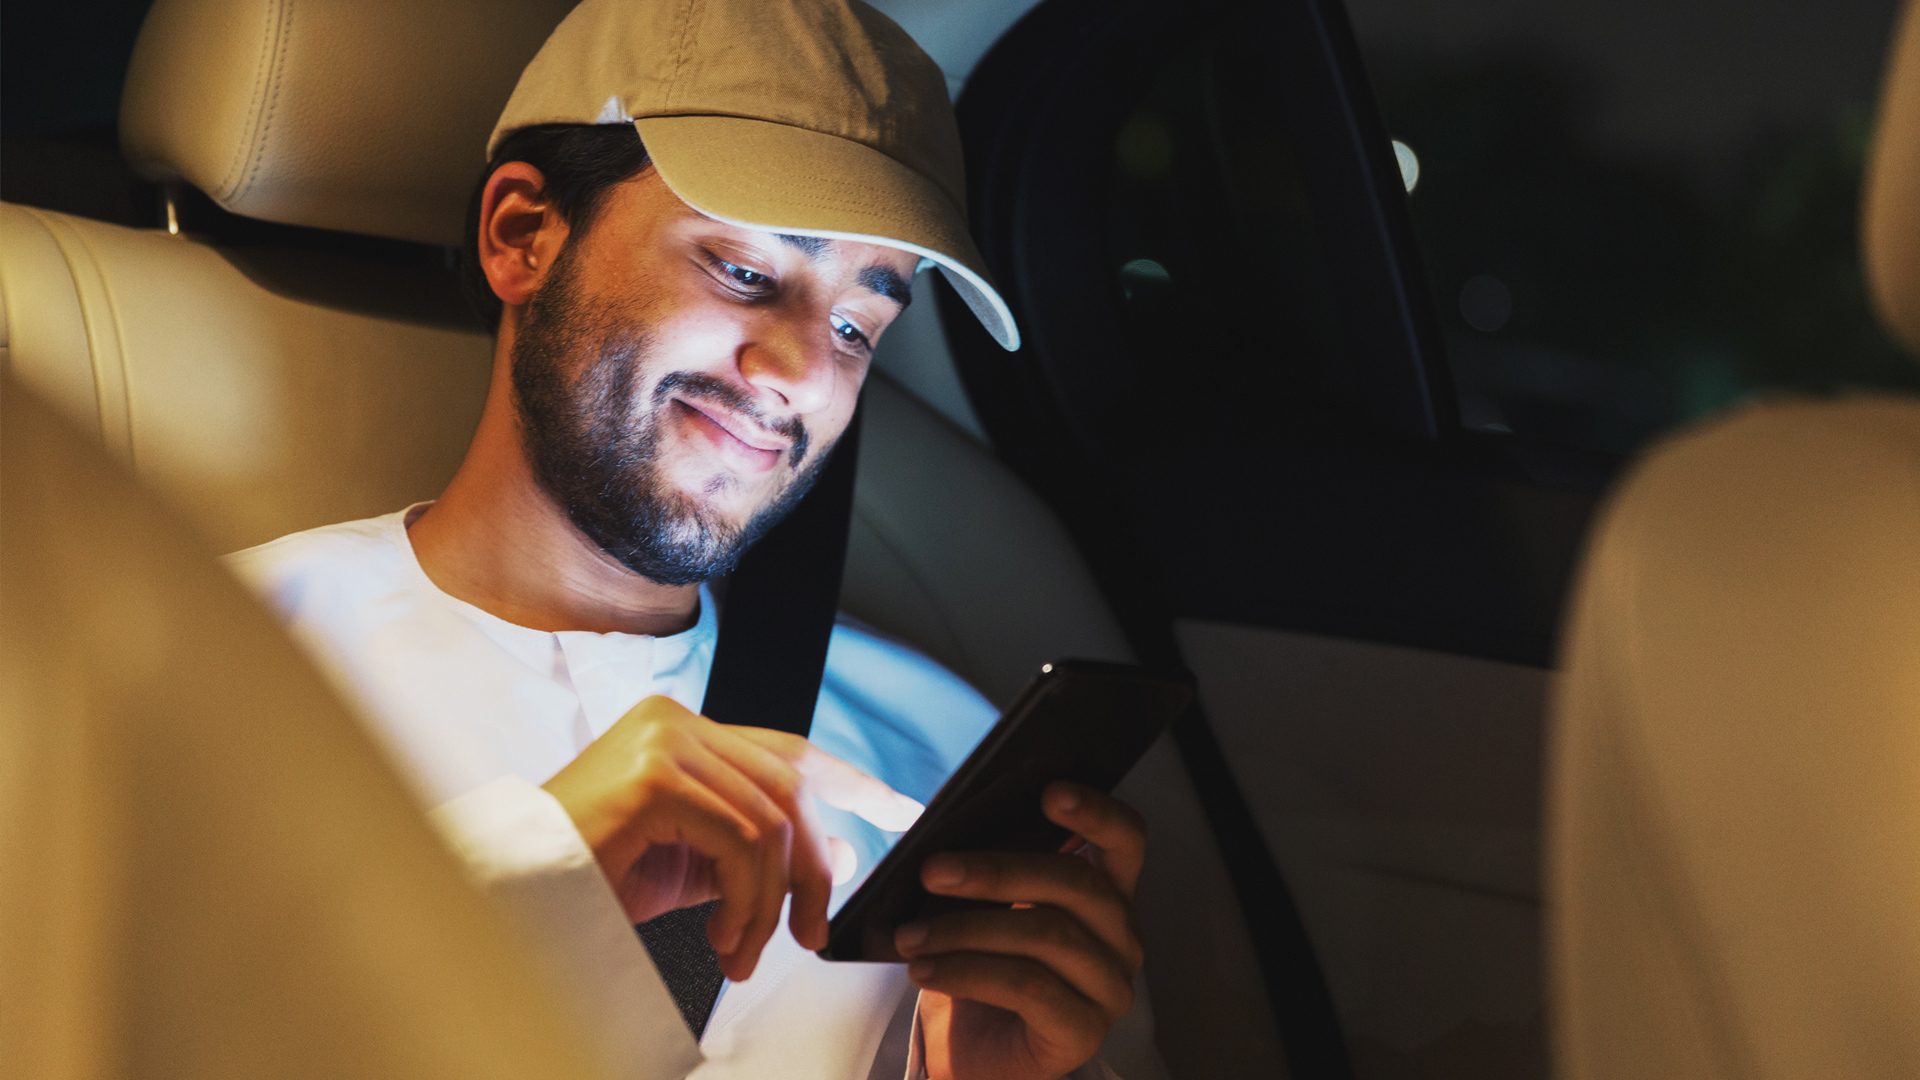 Man on a smartphone in a car